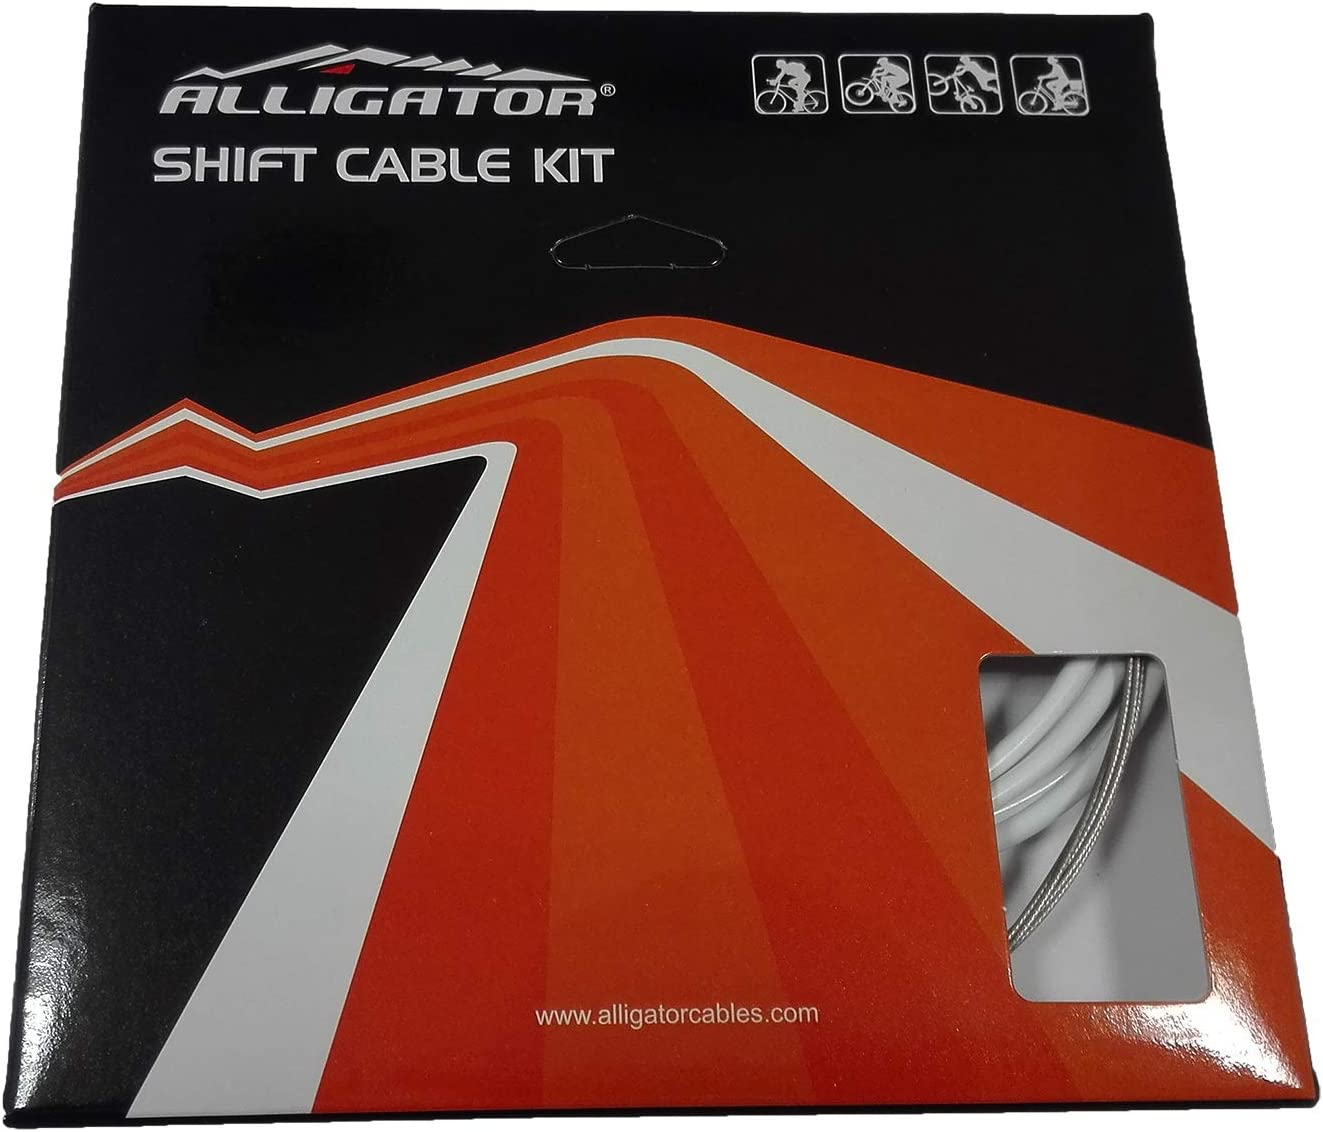 ONOGAL Set Completo Fundas y Cables de Cambio Alligator Sleek ...